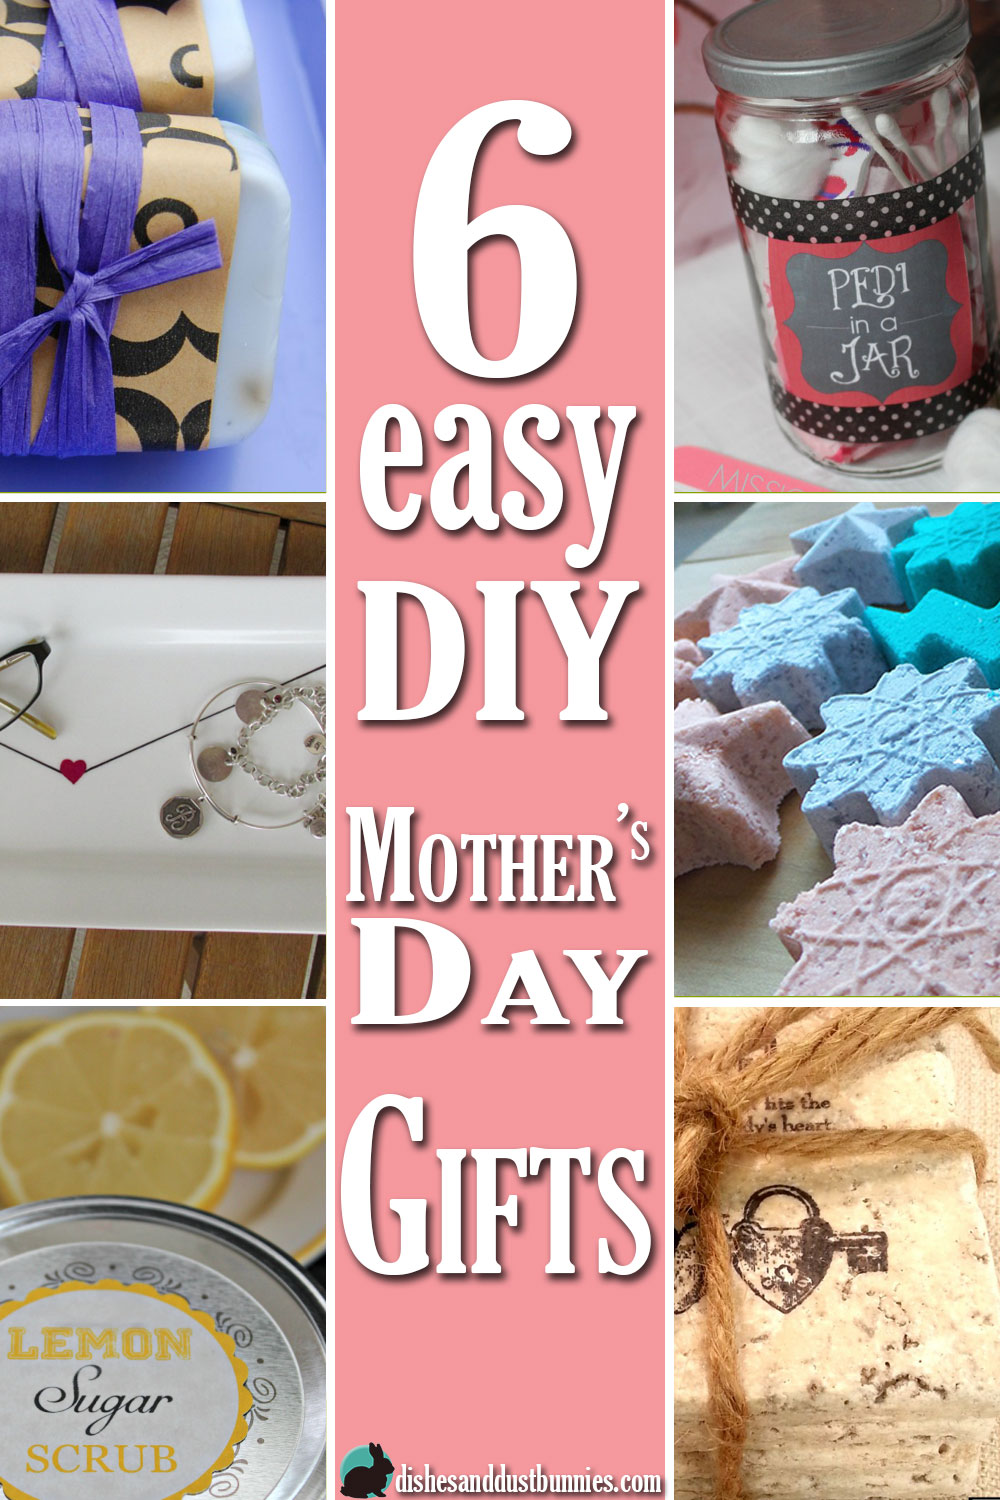 Easy Diy Gifts Diy Gifts And Easy Diy On Pinterest: 6 Easy DIY Mother's Day Gifts